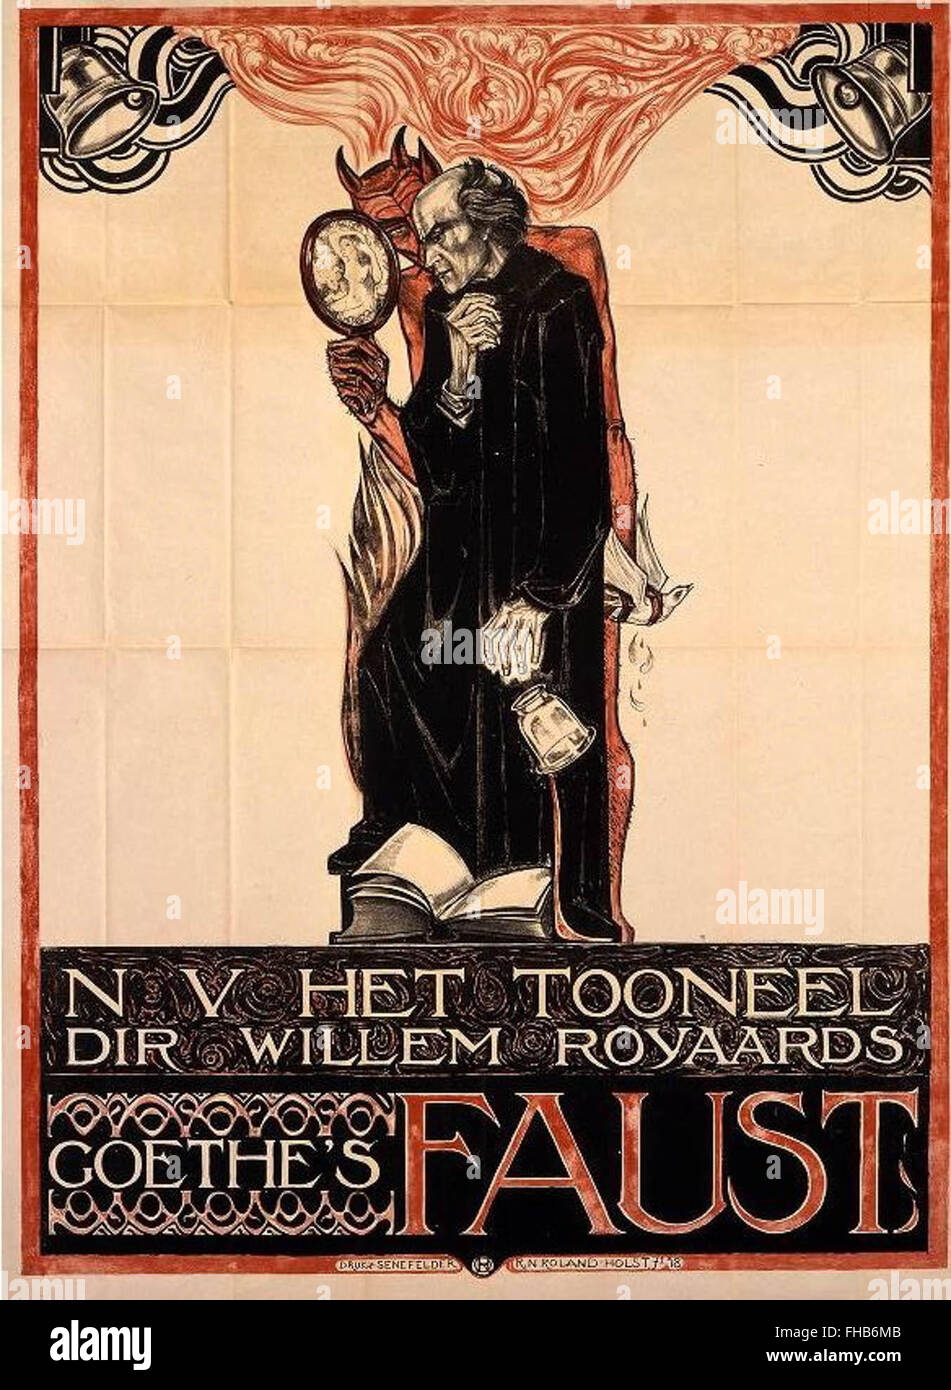 Historical Faust poster - Stock Image